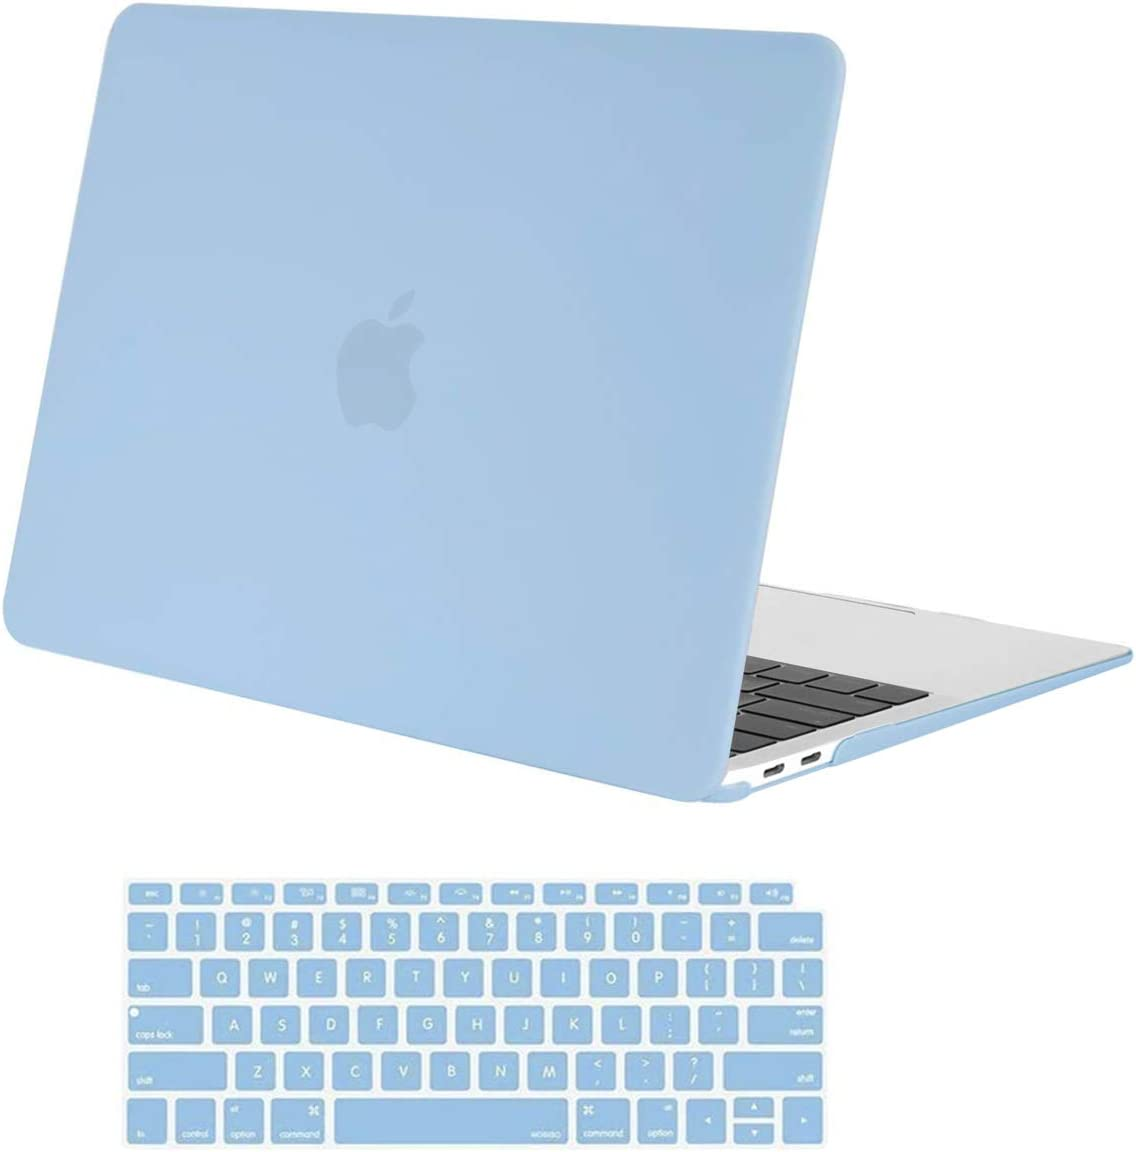 Carcasa Rigida Para Macbook Air 13 2020 2019 2018 airy blue